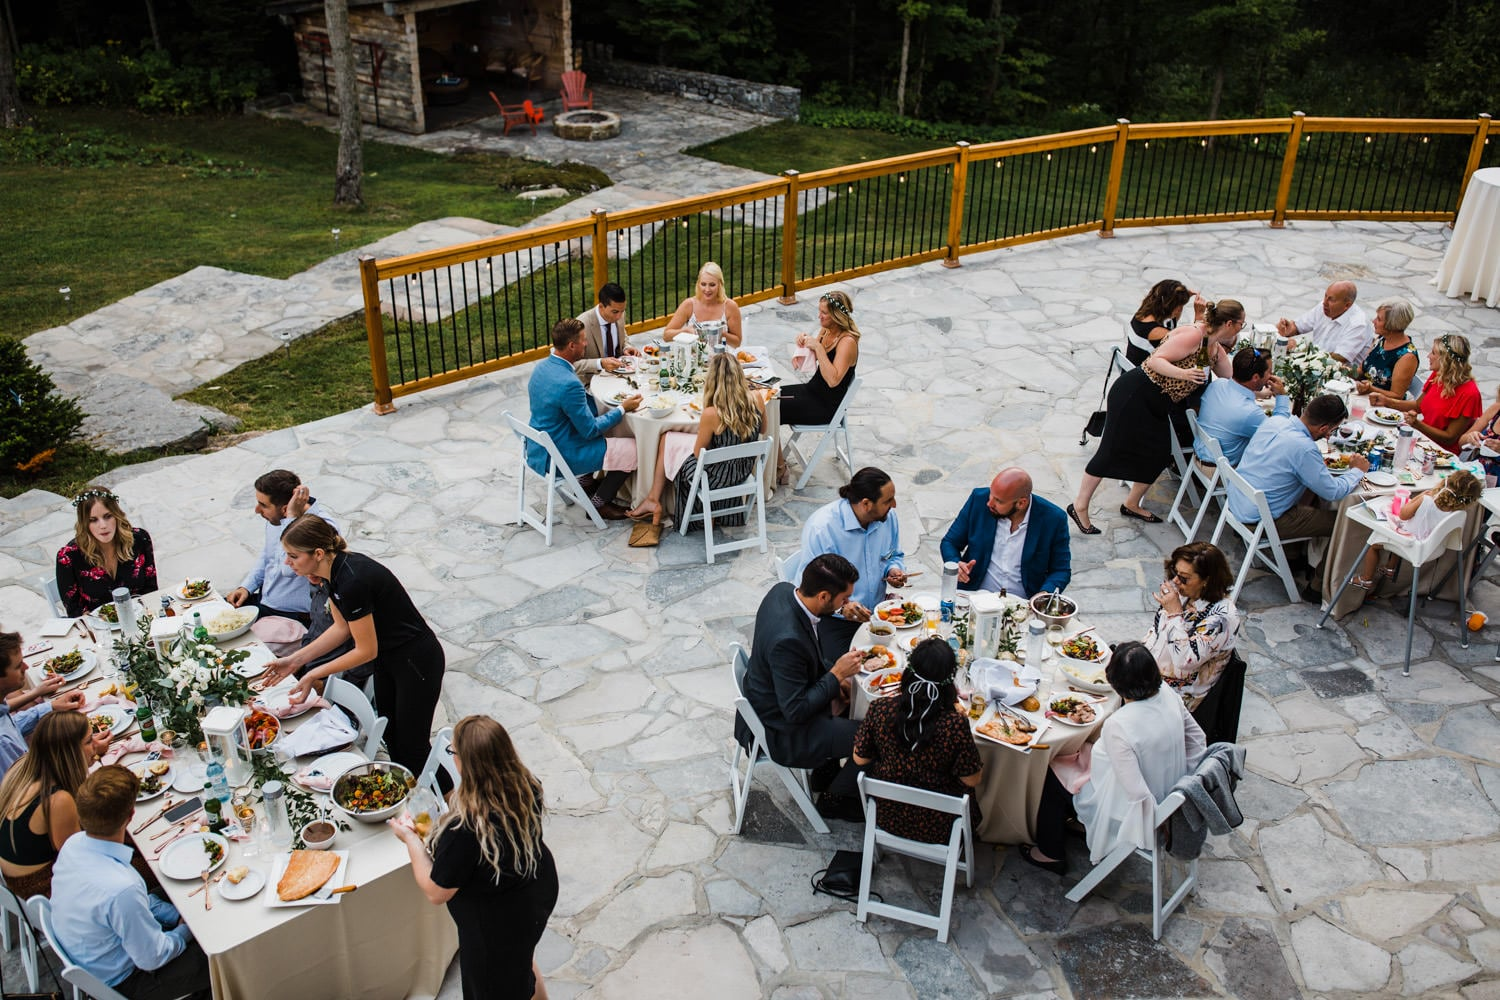 guests sit down for family style dinner at outdoor wedding - ottawa wedding photographer